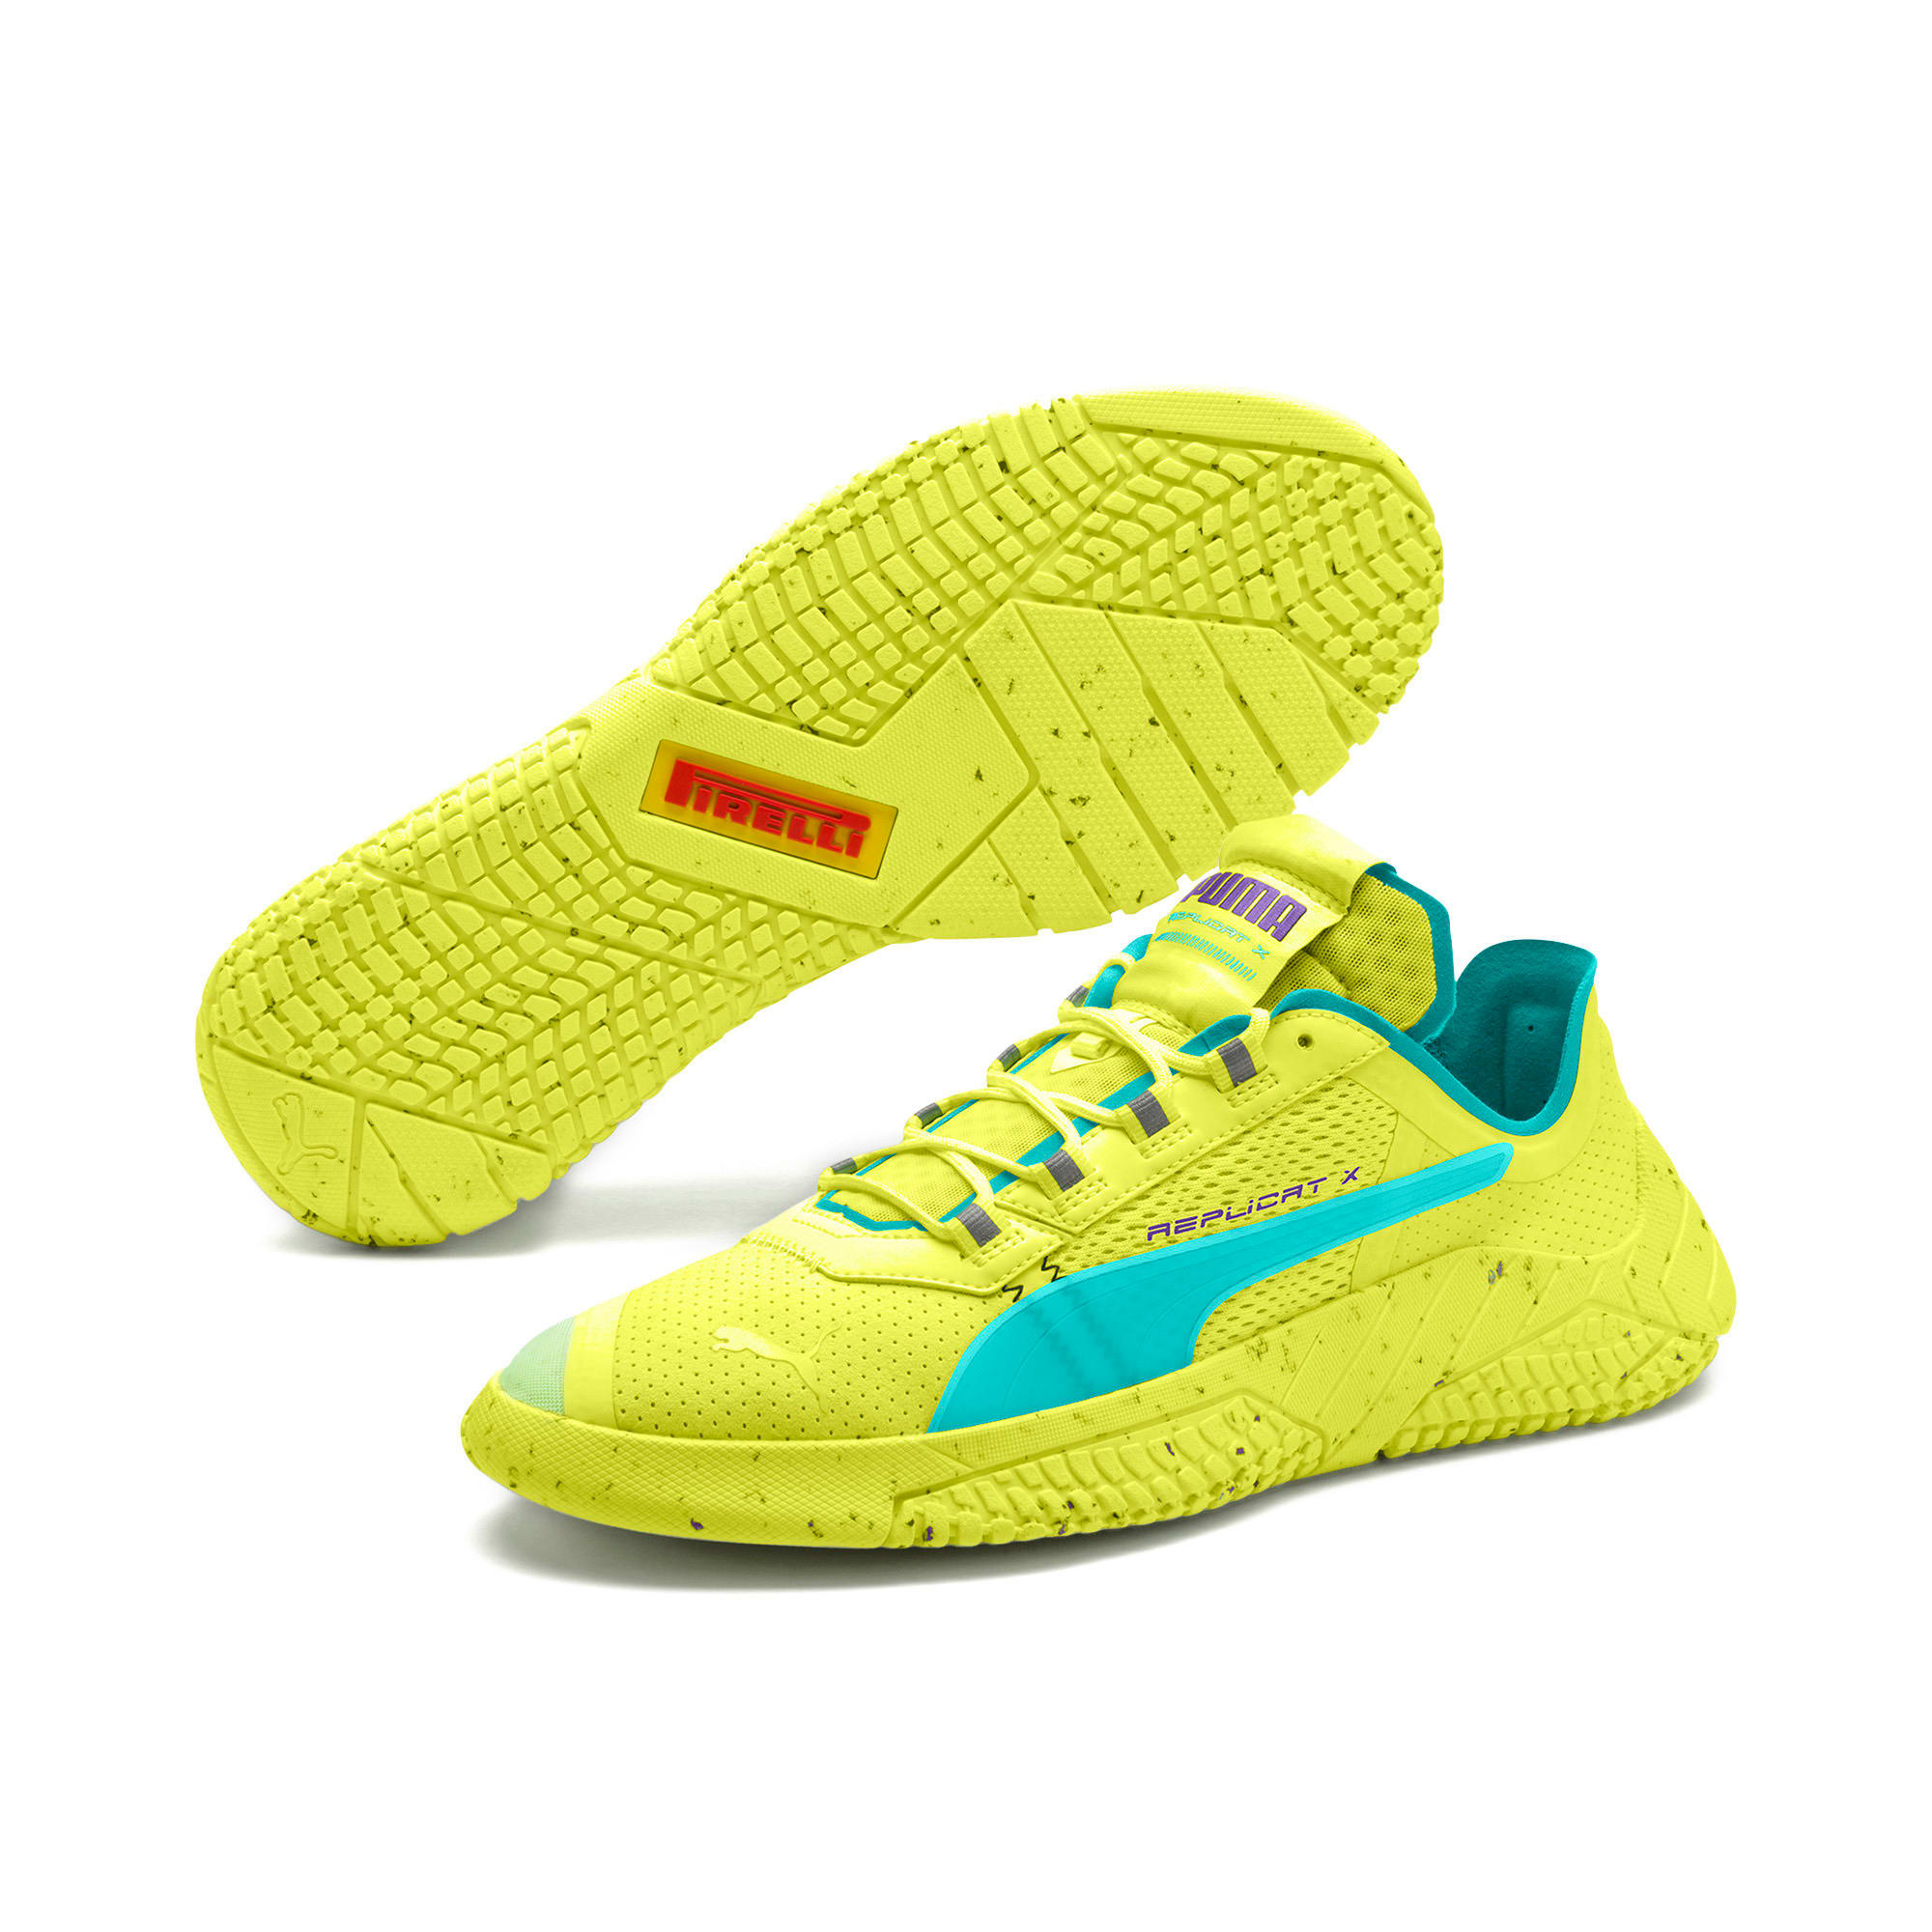 Thumbnail 2 of Replicat-X Fluro Trainers, Fzy Ylw-Blu Trqse-Prpl Glmr, medium